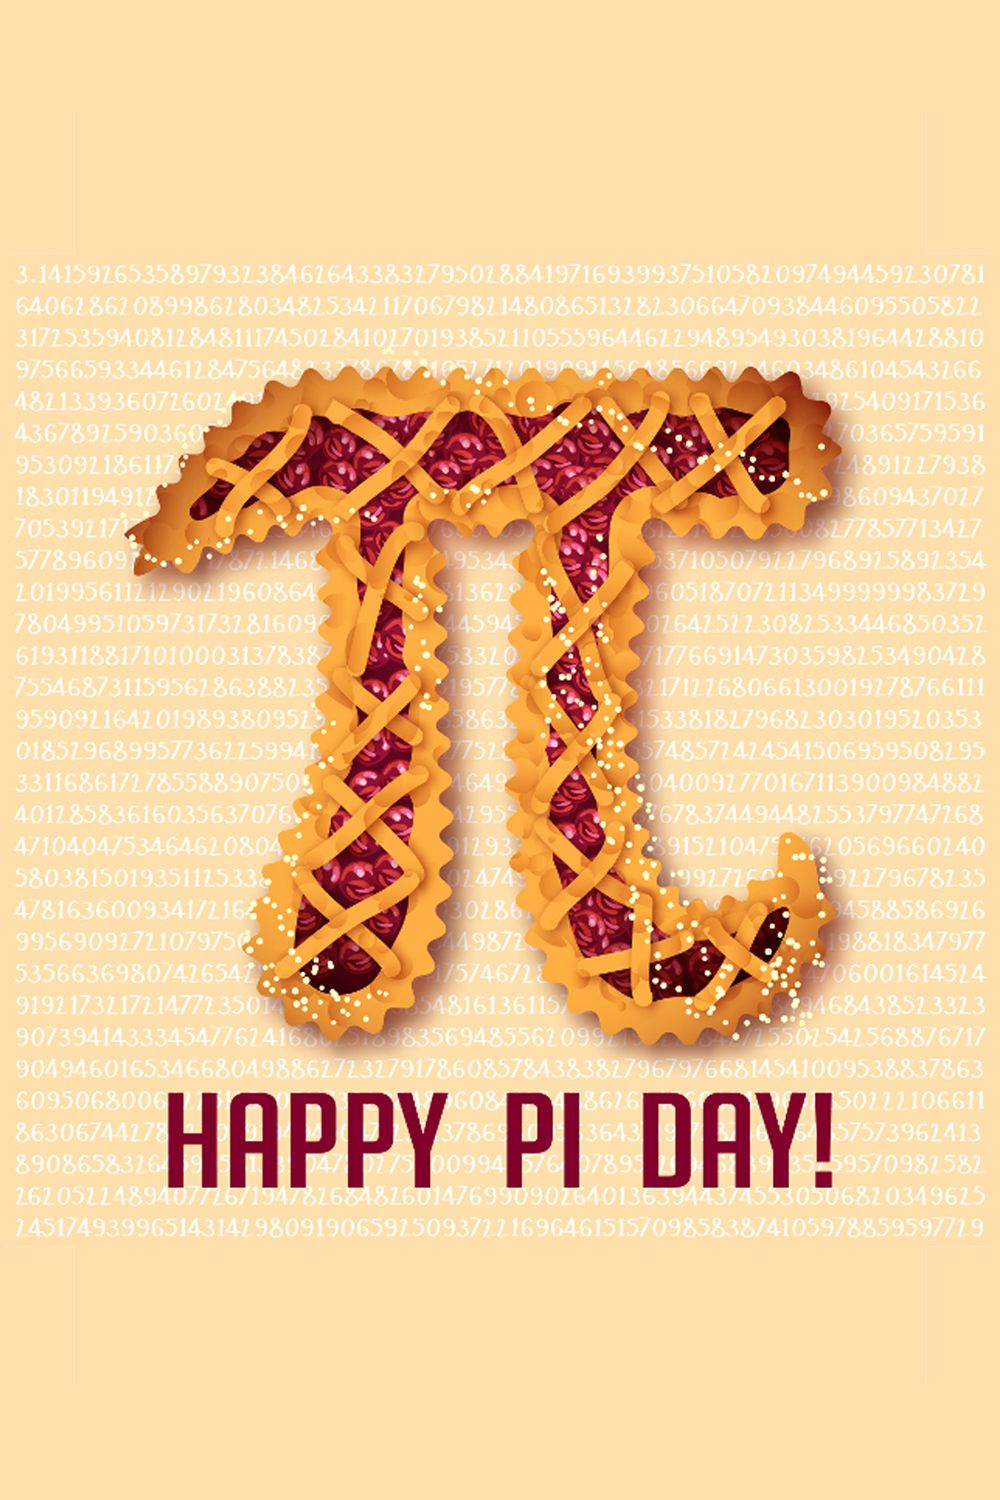 NATIONAL PI DAY March 14, 2020 Happy pi day, Pi day, Day